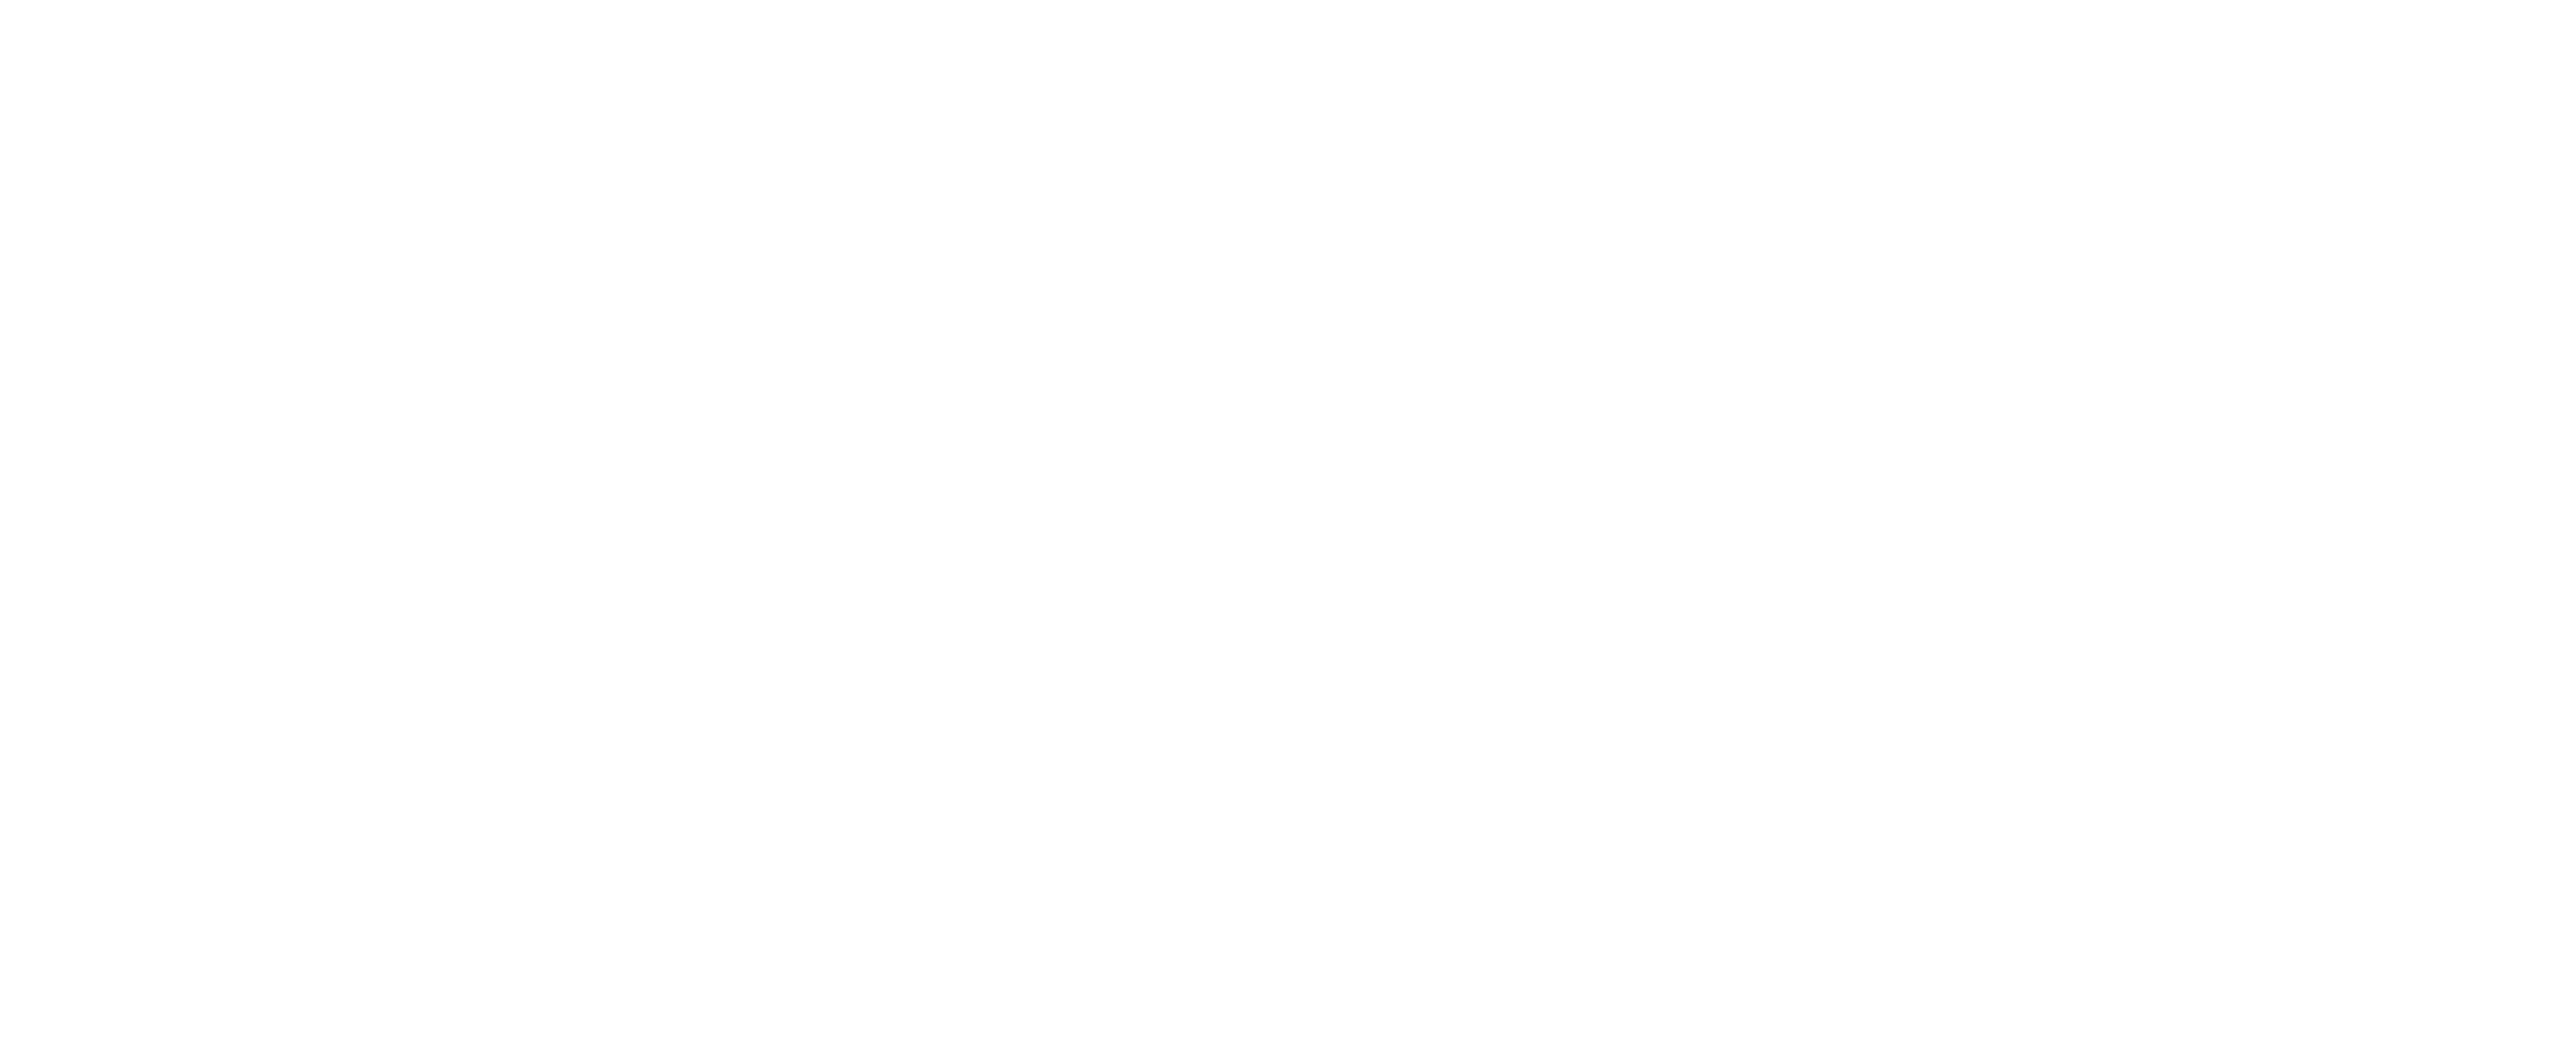 NISHGAKI GUITARS | Official Web Site